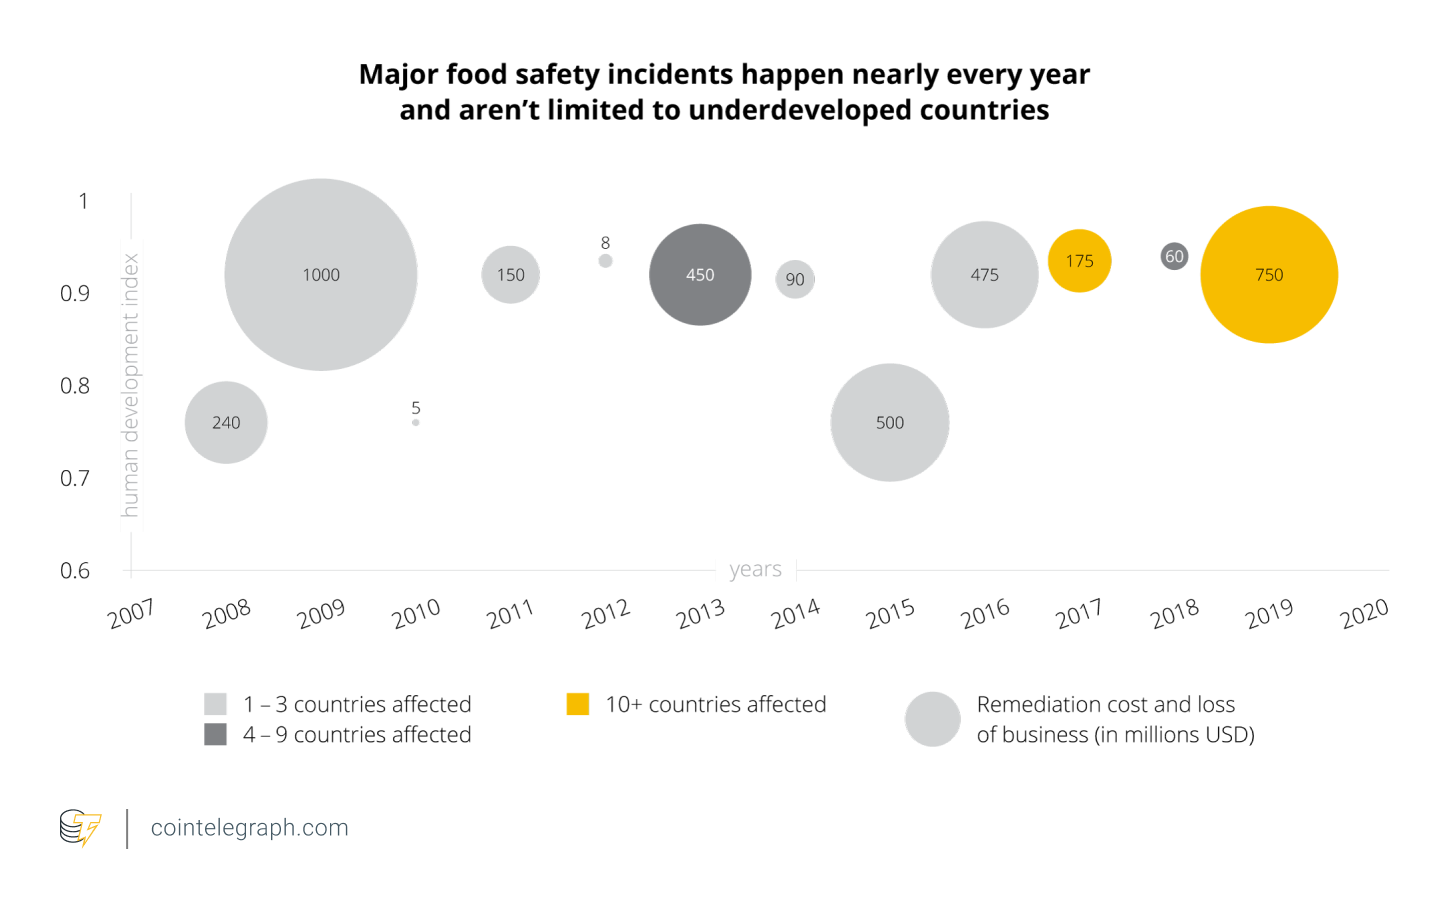 Major Food Safety Incidents